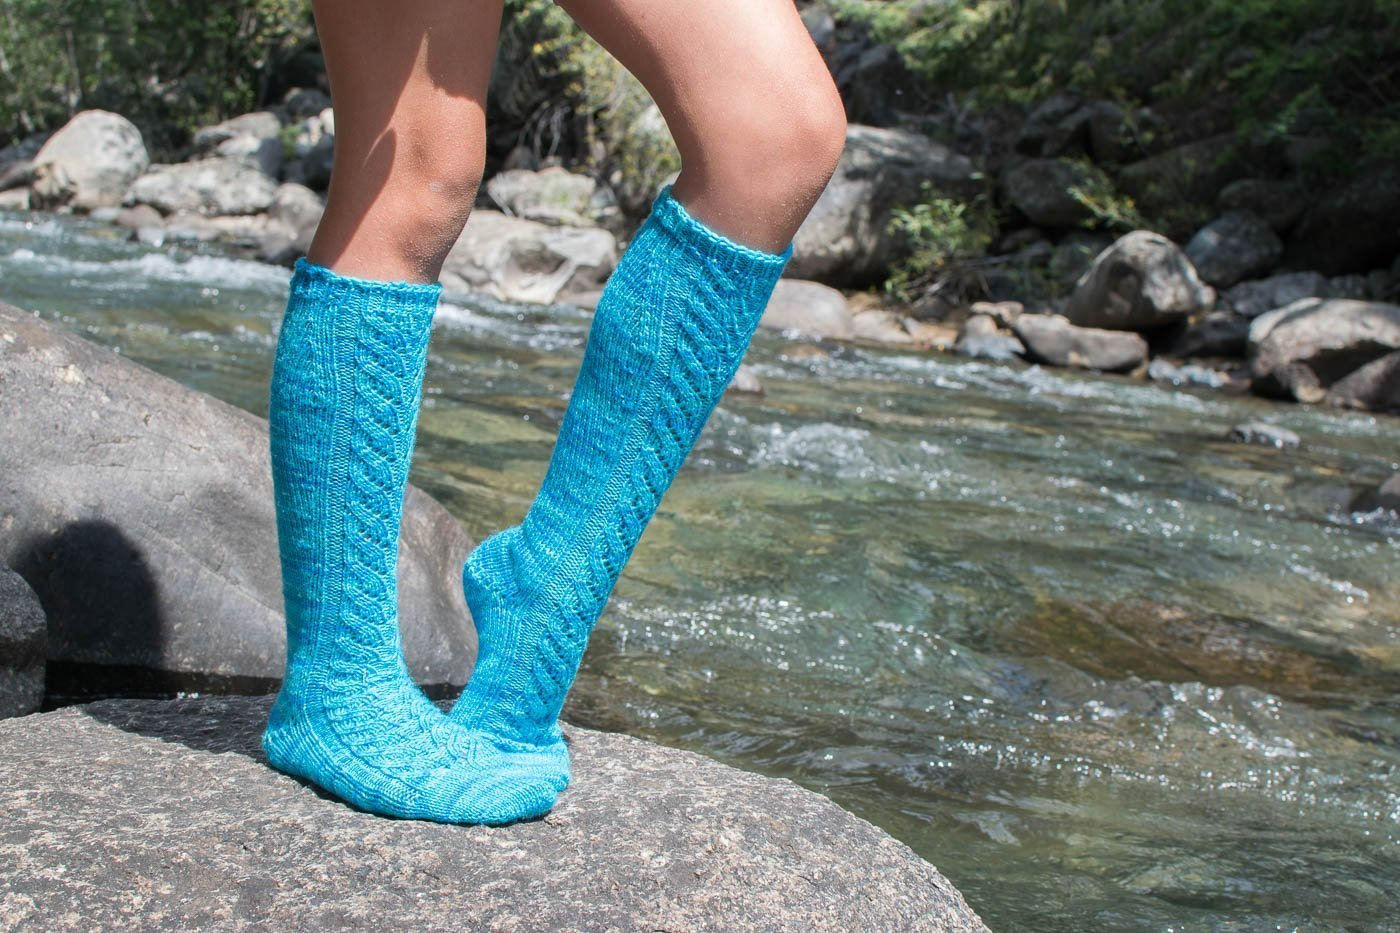 The Skola Socks knitting pattern